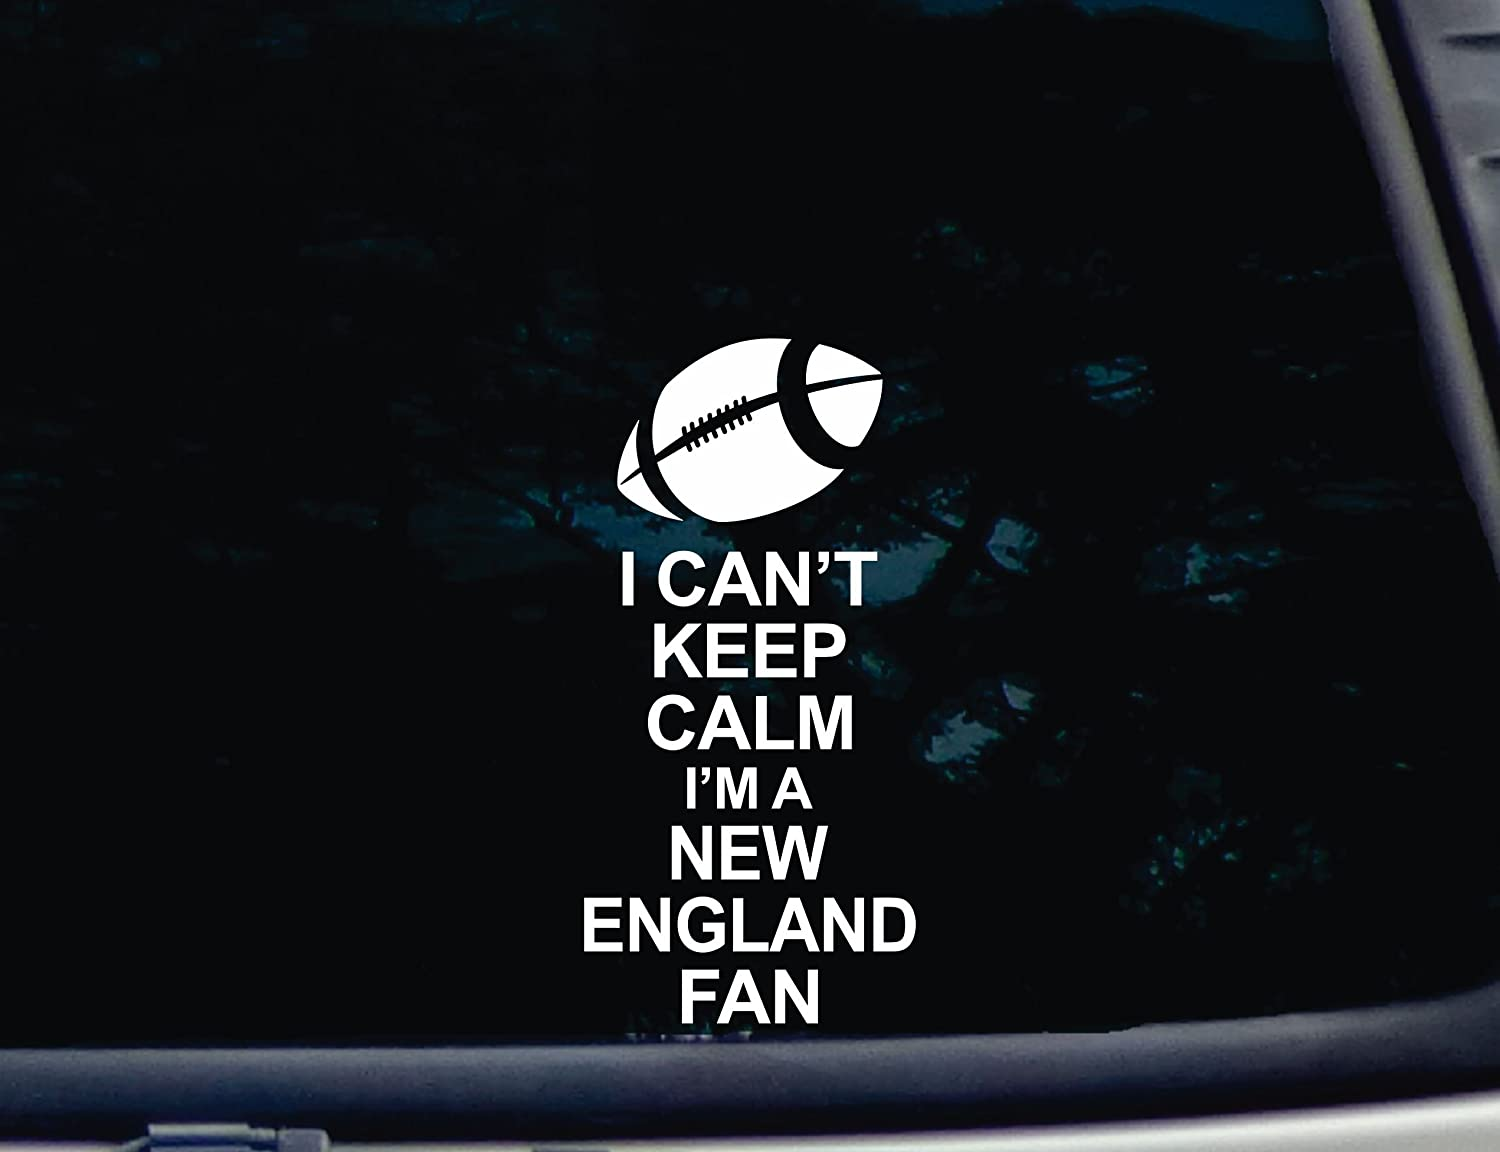 """I Can't Keep Calm I'm a New England Fan - 3 3/4"""" x 7 3/4"""" die Cut Vinyl Decal for Windows, Cars, Trucks, Tool Boxes, laptops, MacBook - virtually Any Hard, Smooth Surface"""